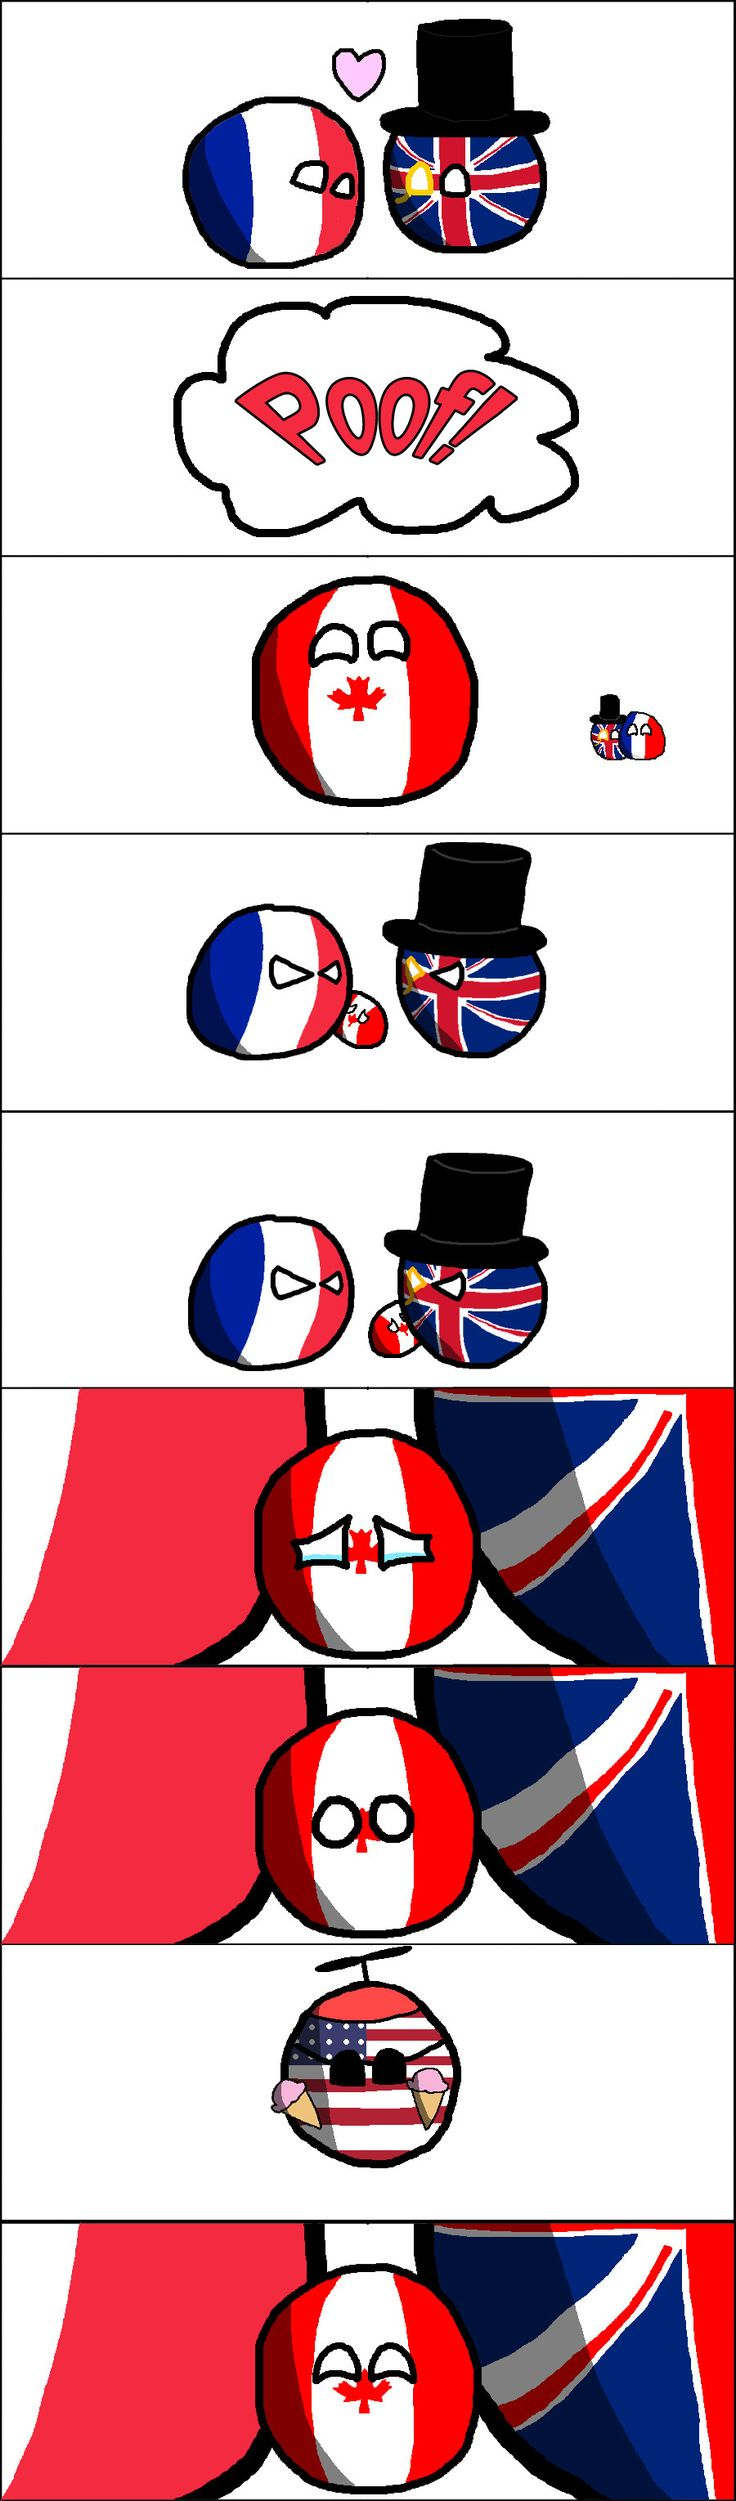 614792d23c56bf47c6acba31f10e9d49 canada memes canada eh 129 best countryball memes images on pinterest funny pics, funny